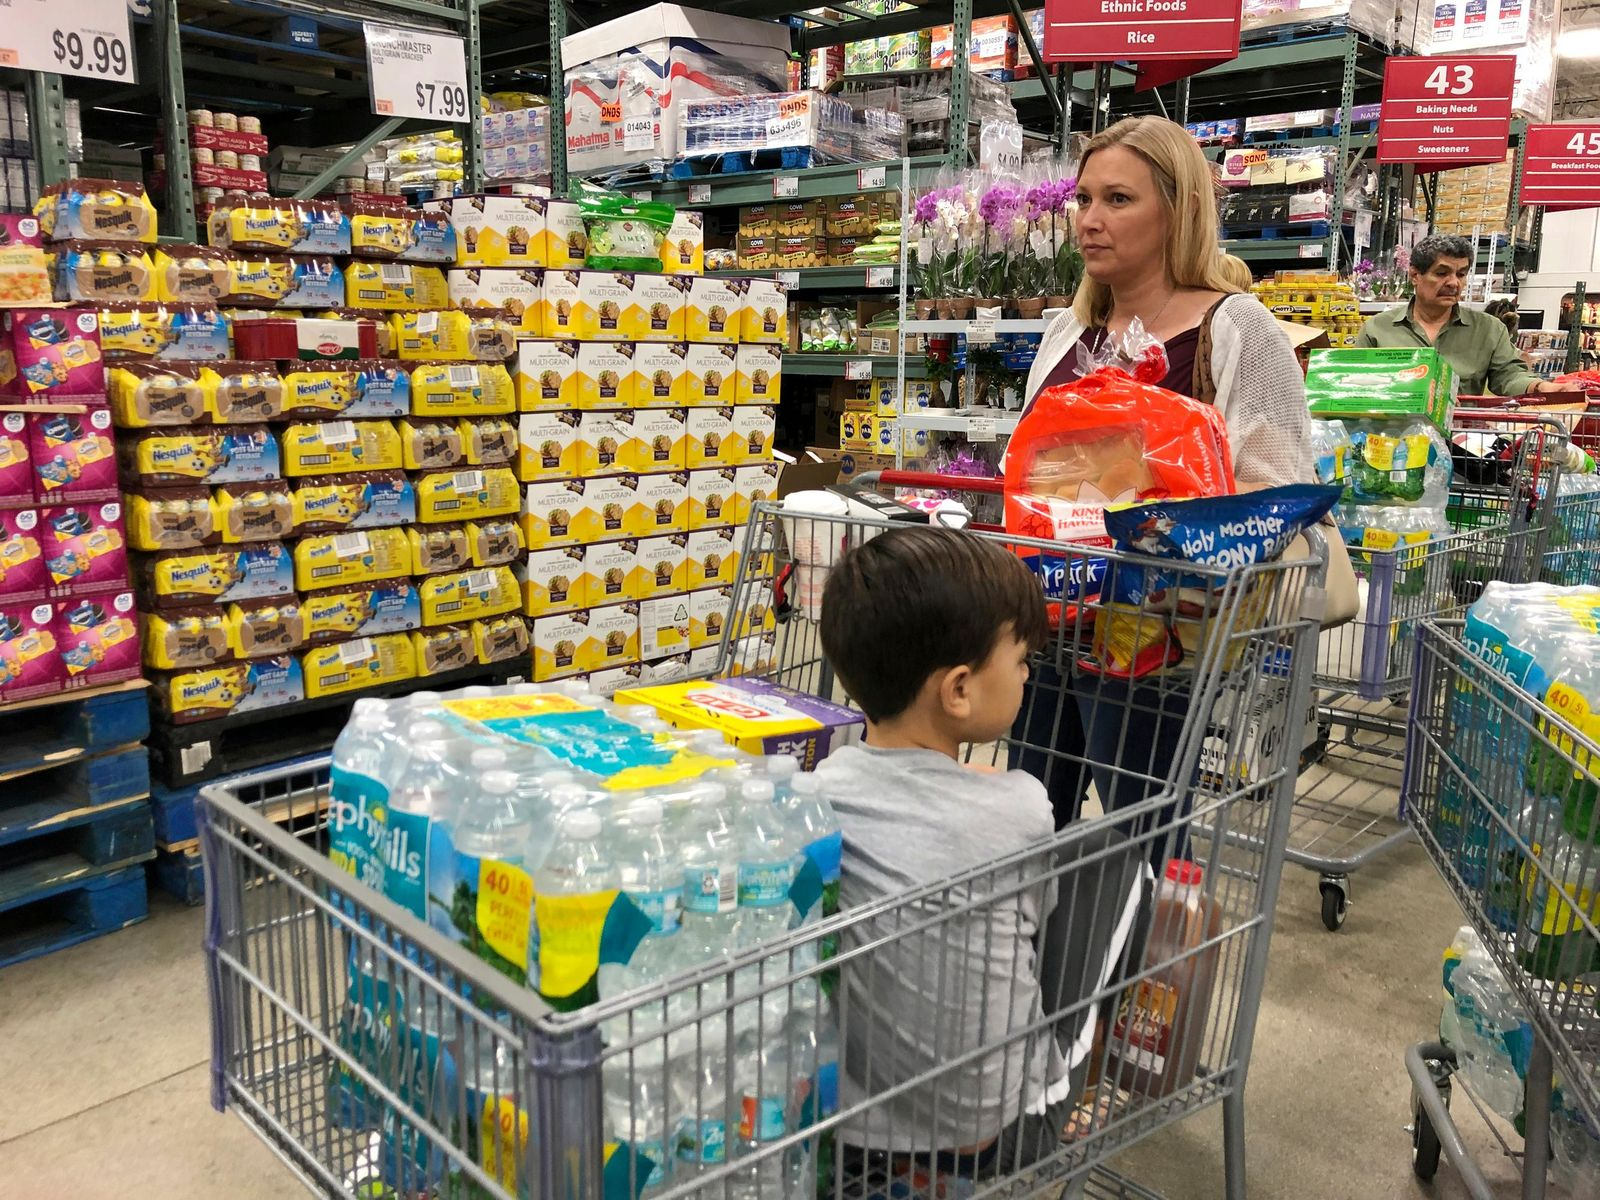 Tiffany Miranda of Miami Springs stands in line with supplies at a BJ's Wholesale Club Thursday, Aug. 29, 2019, in Hialeah, Fla.{ } (AP Photo/Marcus Lim)